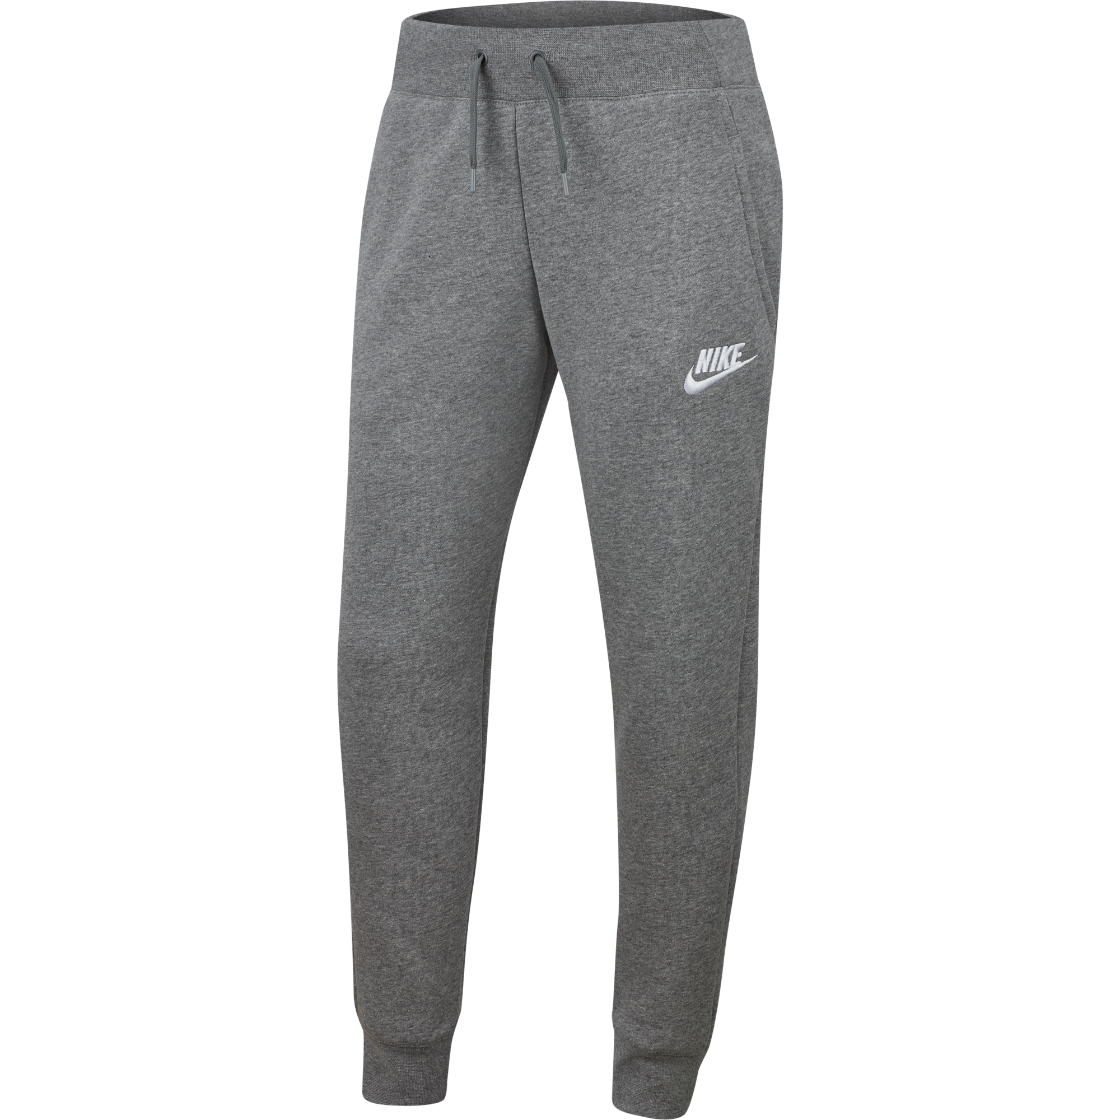 Dressipüksid Nike Girls NSW PE PANT hall - Popsport!